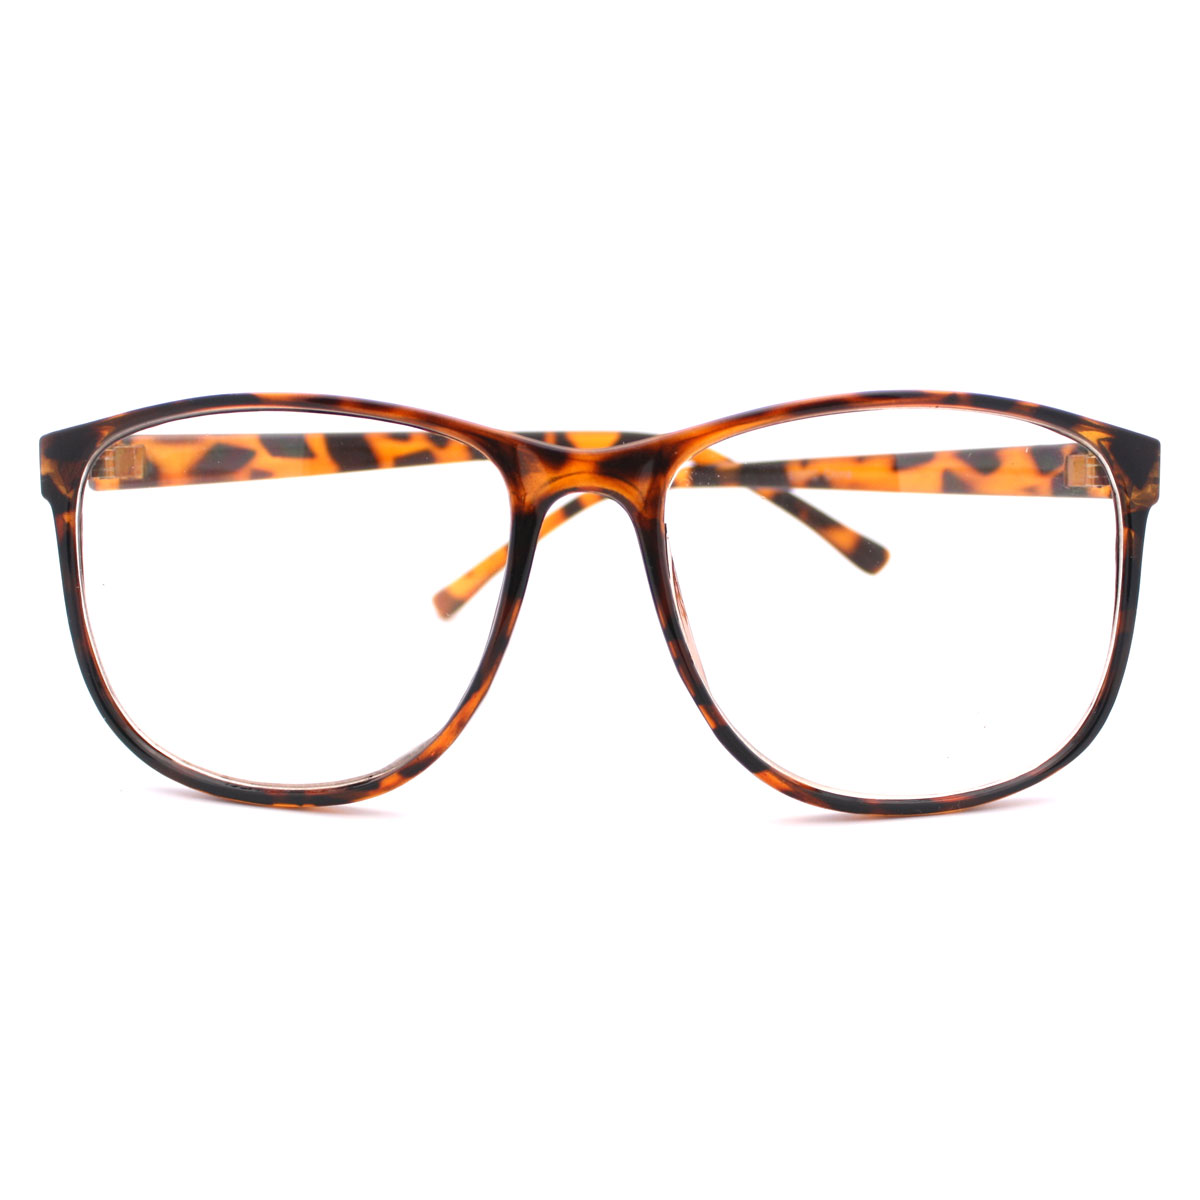 Big Glasses With Thin Frames : Tortoise Brown Large Nerdy Clear Lens Thin Horn Rim Geek ...